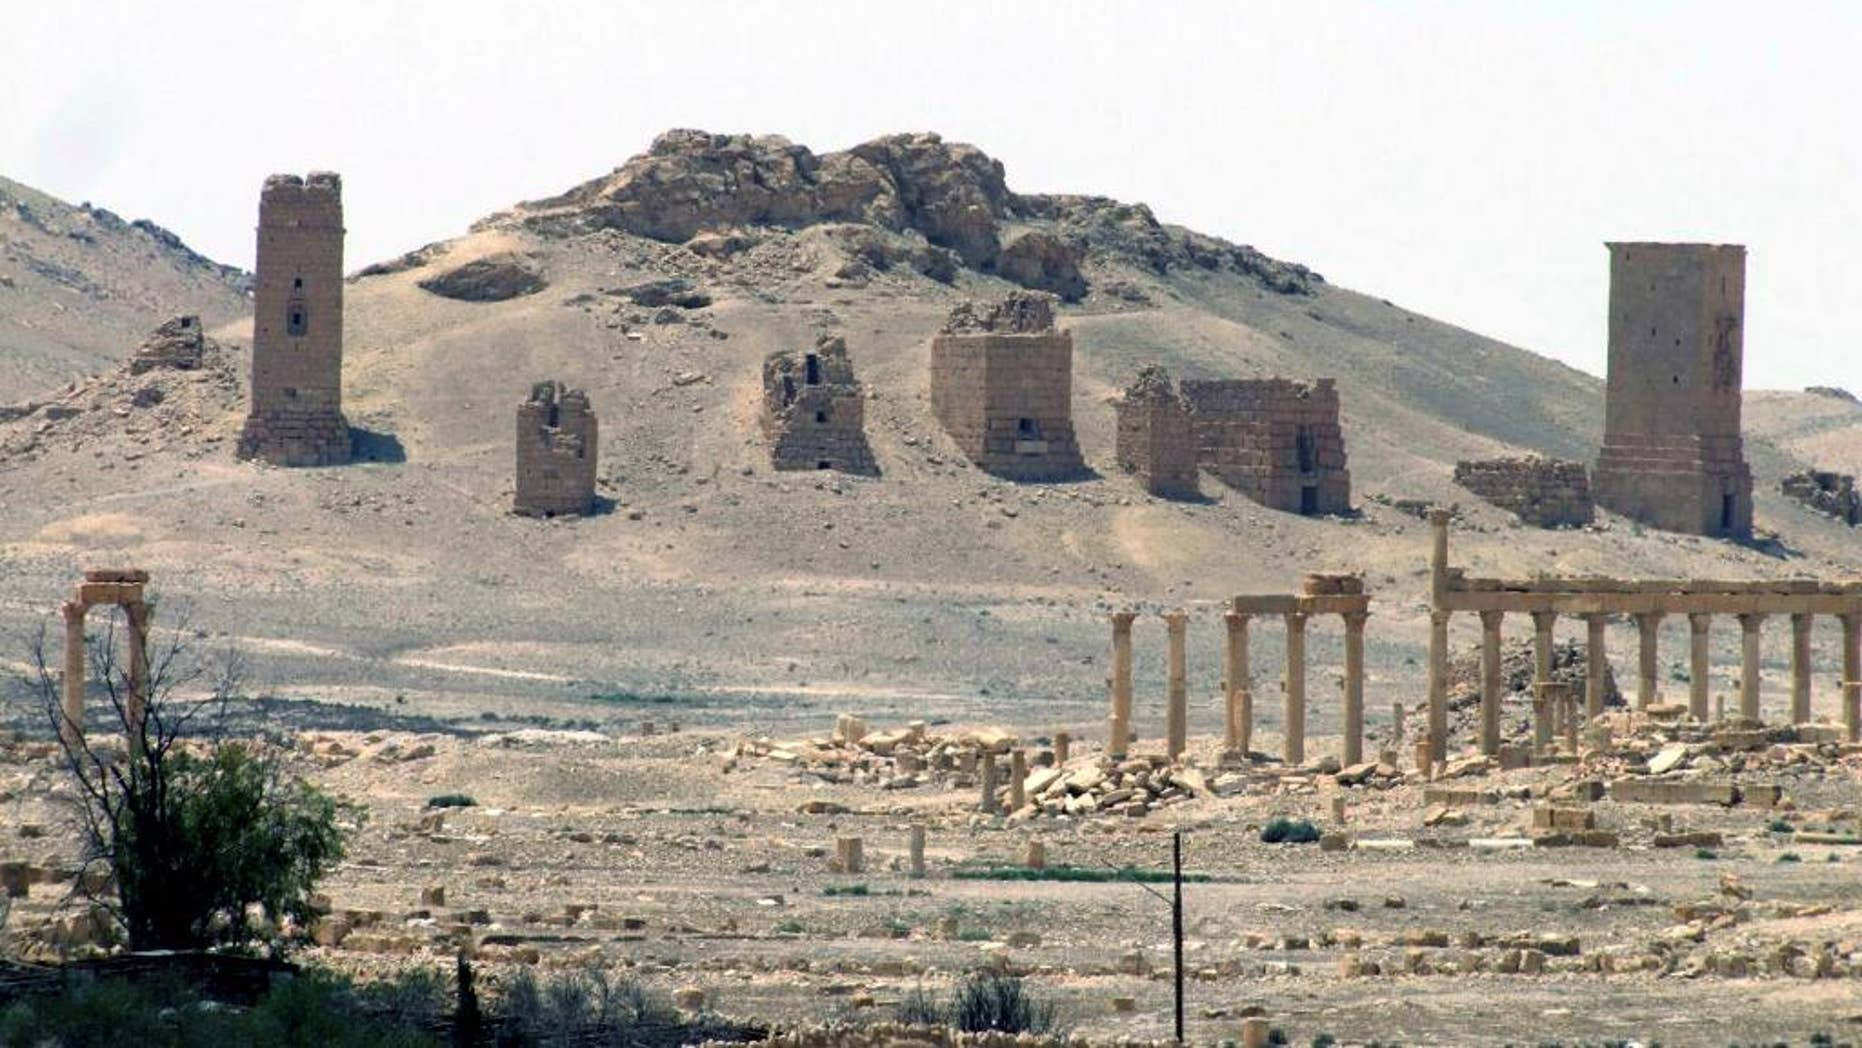 FILE - This file photo released on Sunday, May 17, 2015, by the Syrian official news agency SANA, shows the general view of the ancient Roman city of Palmyra, northeast of Damascus, Syria. Syrian activists said late Sunday, Oct. 4, 2015, that Islamic State militants have destroyed a nearly 2,000-year-old arch in the ancient city of Palmyra, the latest victim in the group's campaign to destroy historic sites across the territory it controls in Iraq and Syria. (SANA via AP, File)